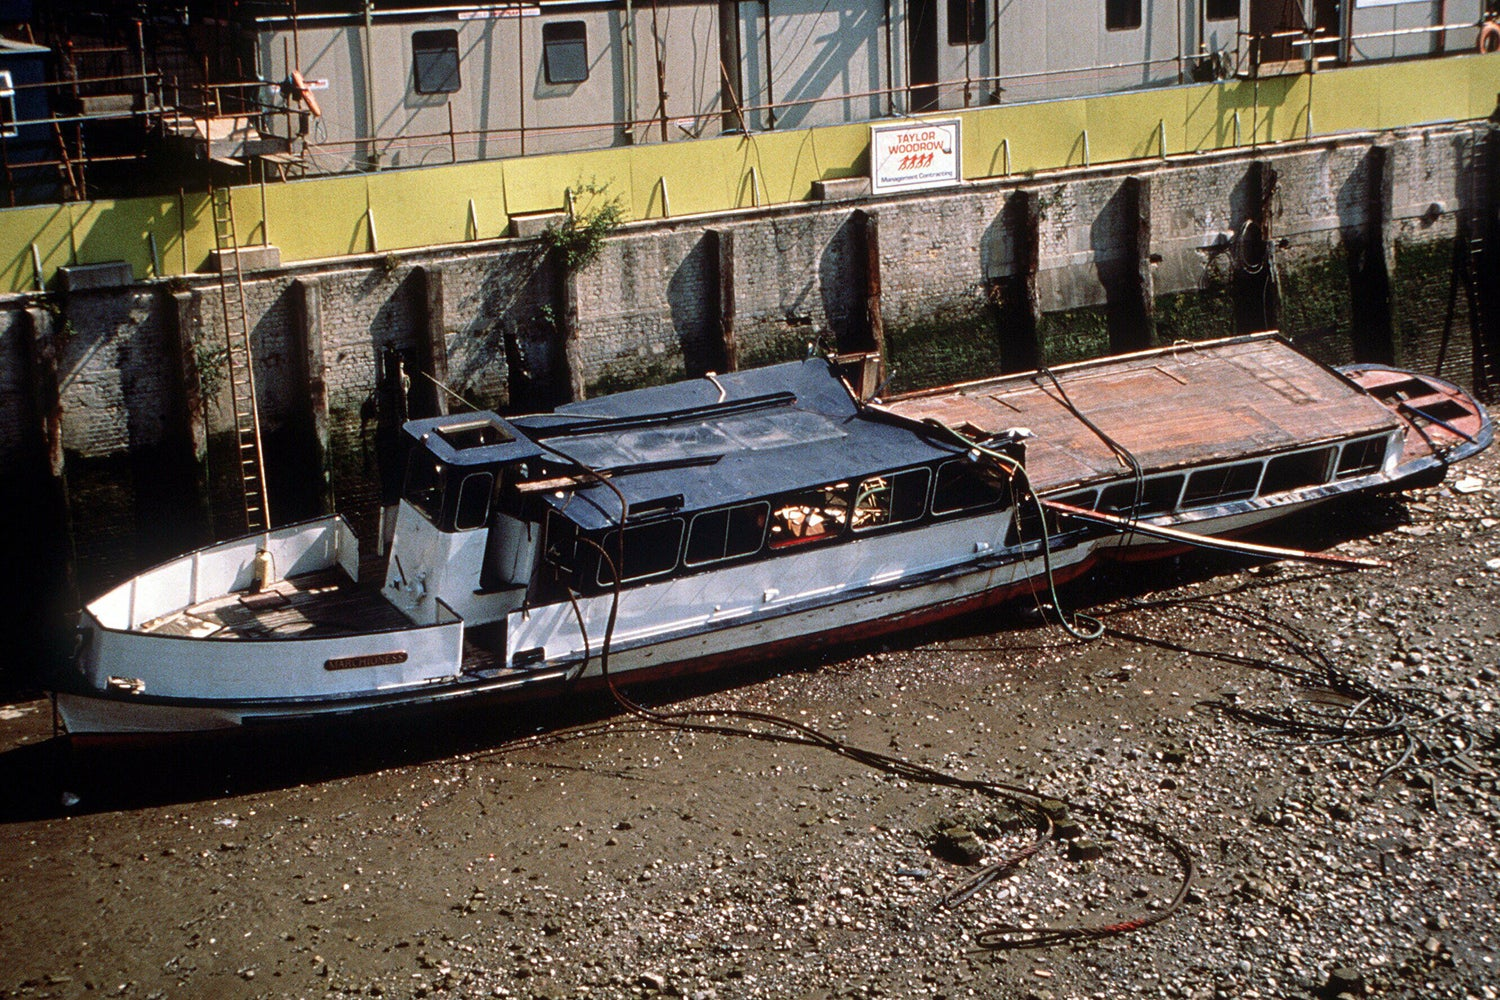 The aftermath of the Marchioness Thames pleasure boat sinking